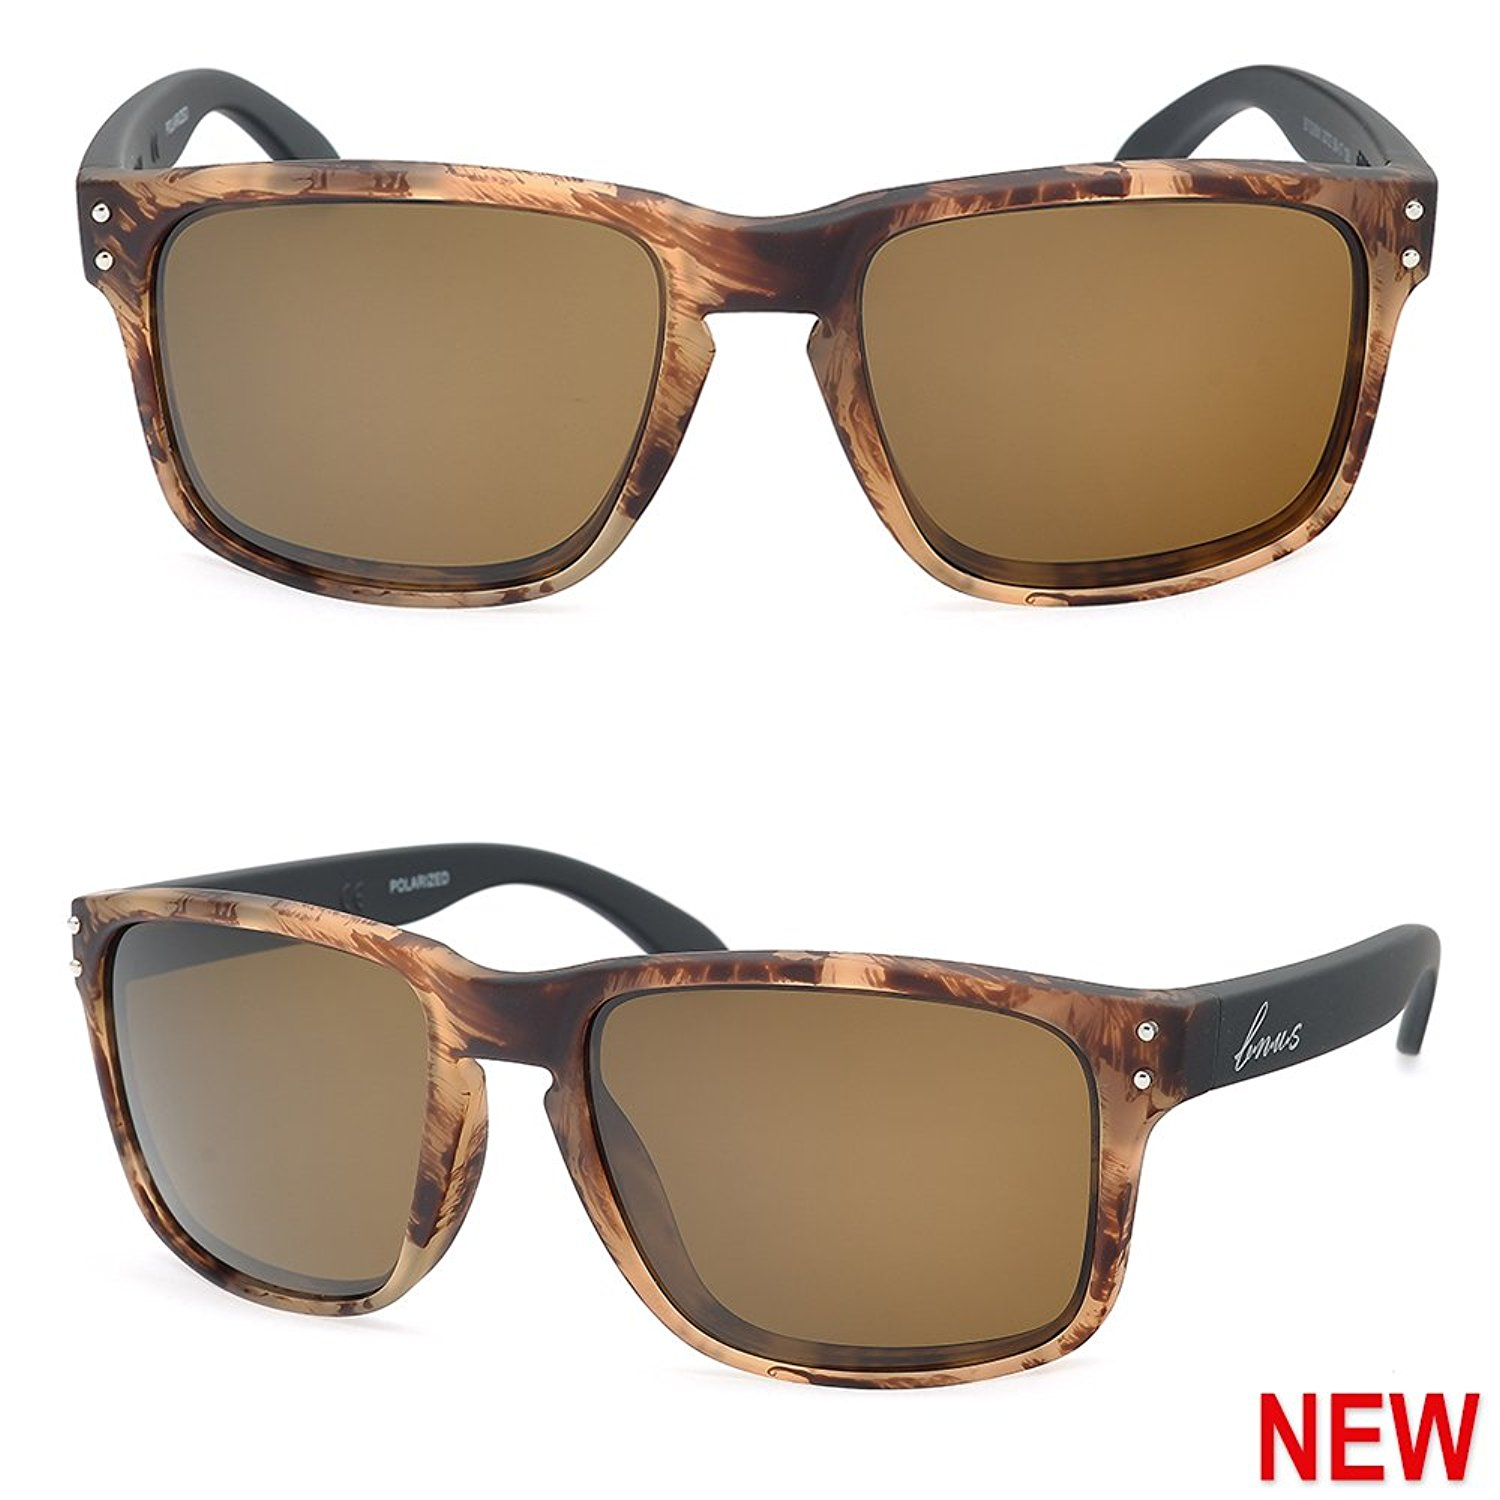 440b9d405be Get Quotations · Bnus italy made classic sunglasses corning real glass lens  w. polarized option (Frame